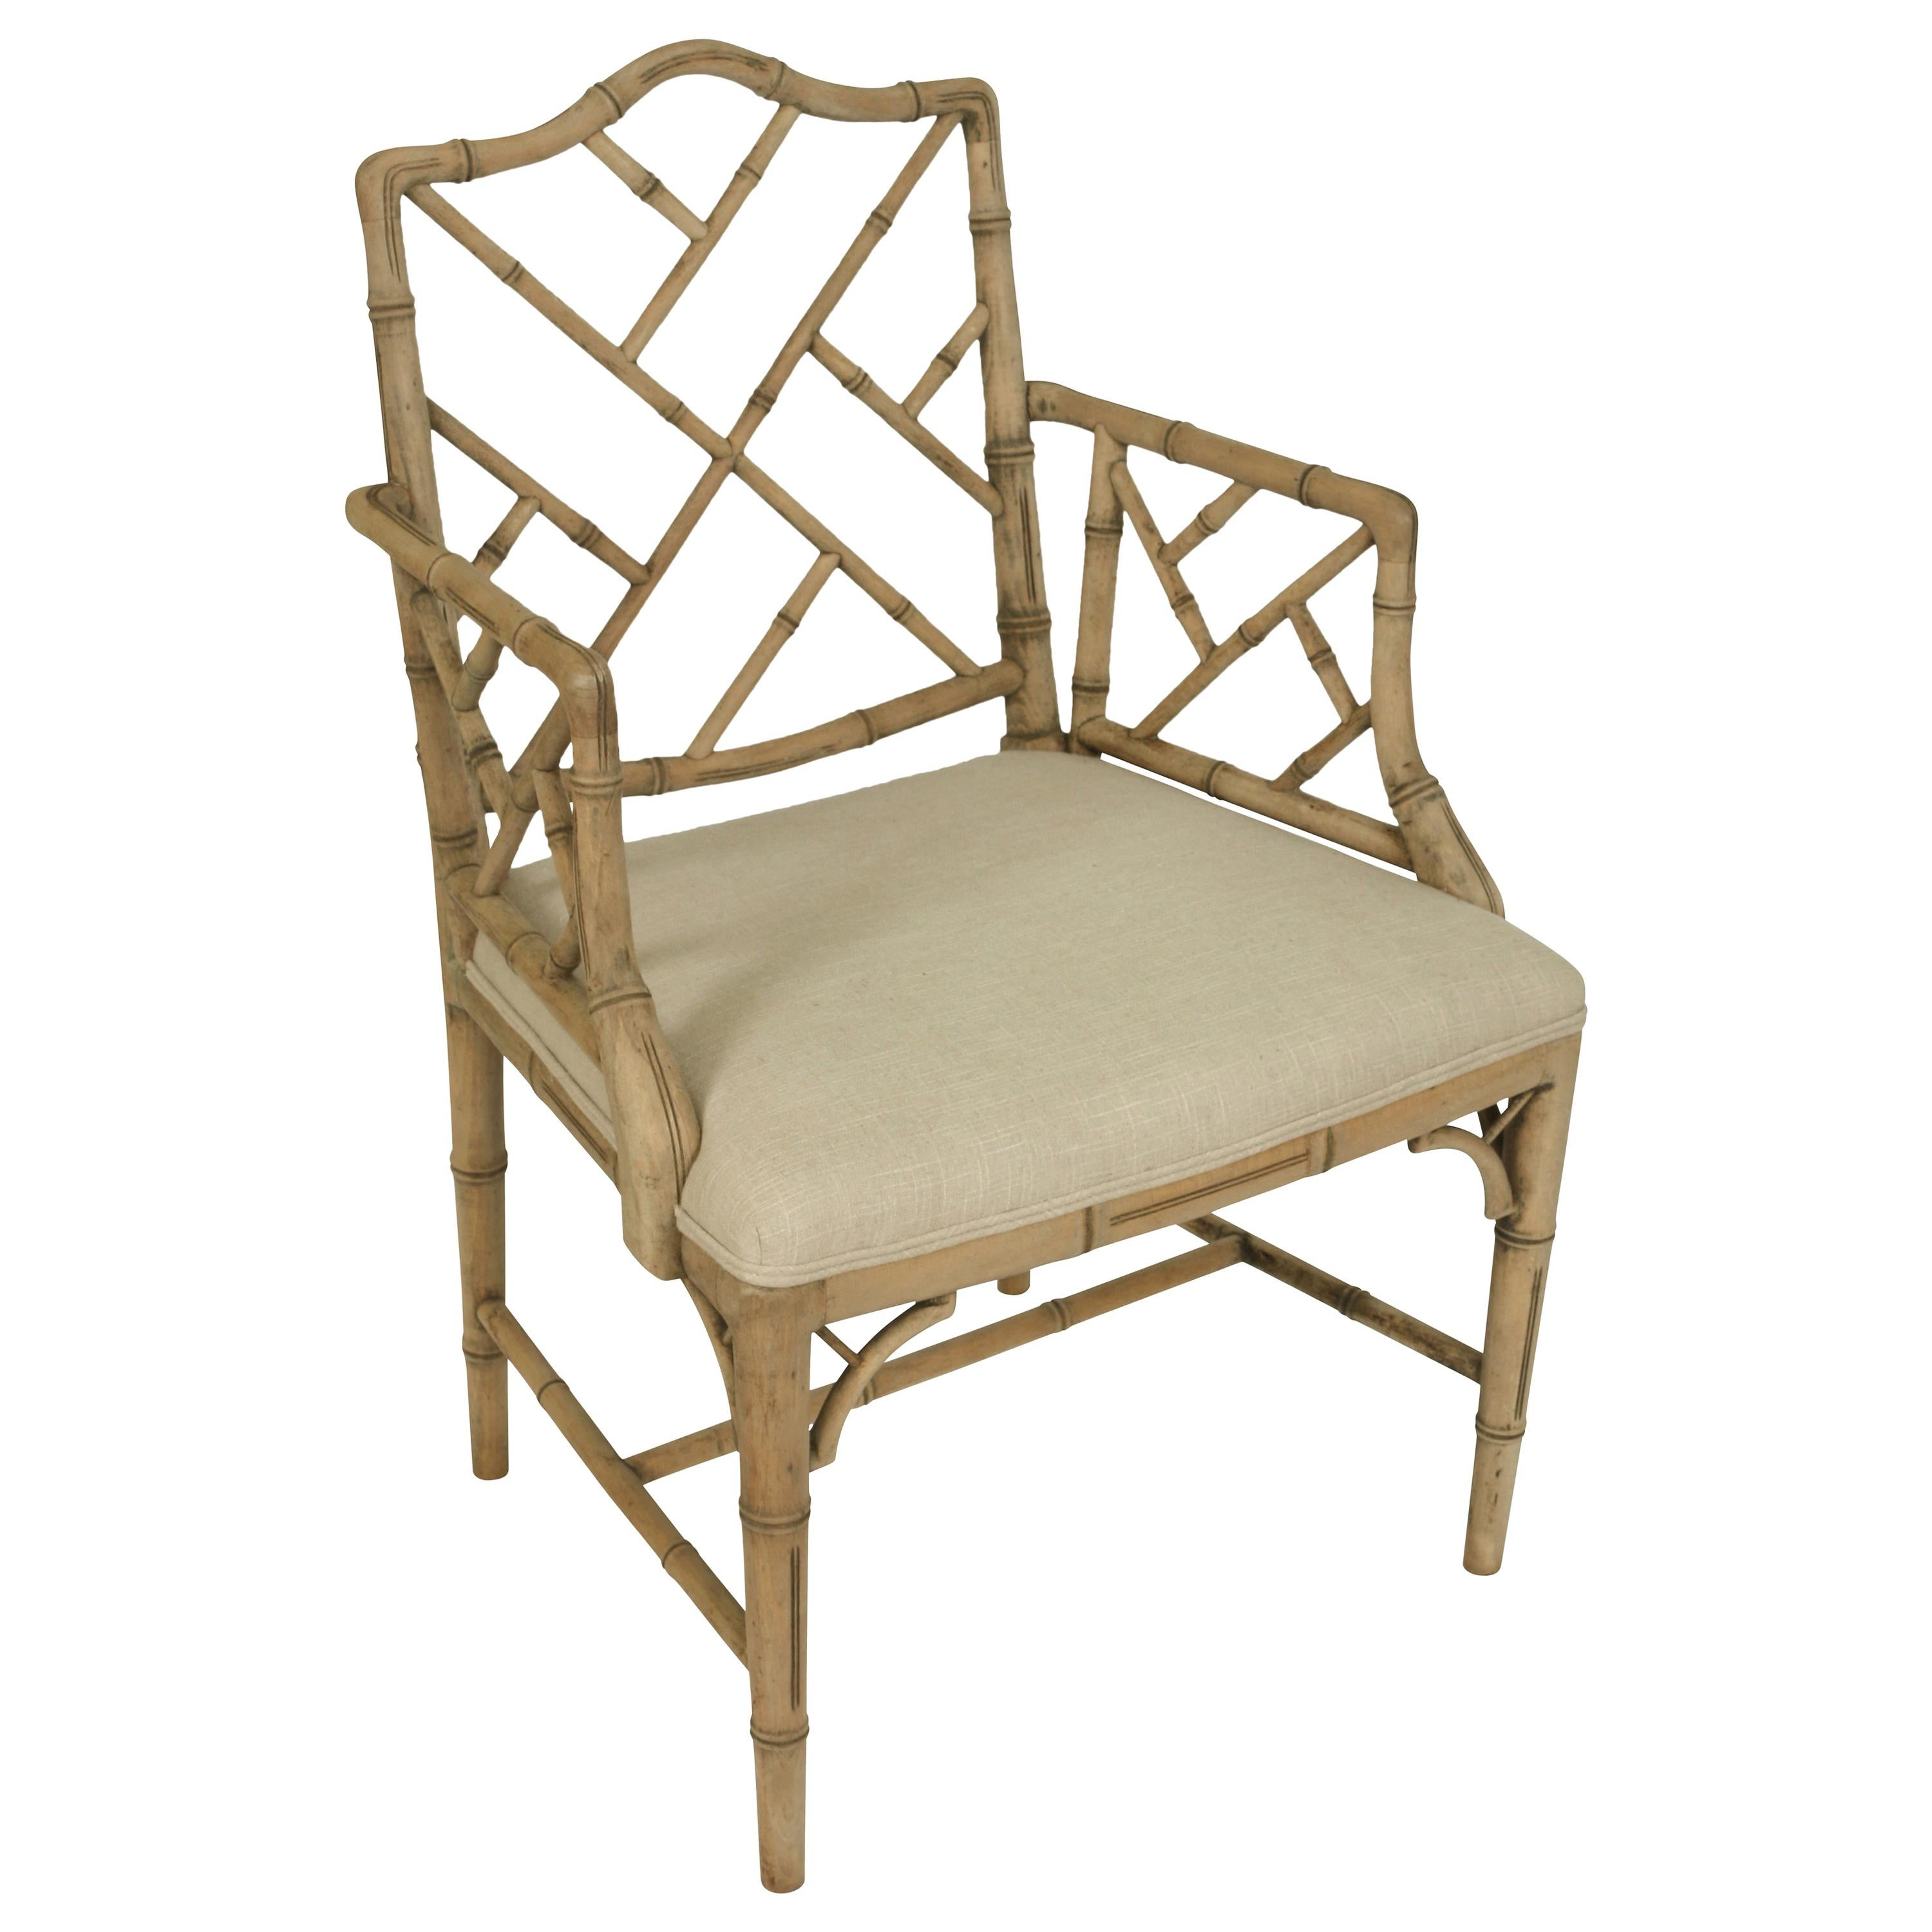 Faux Bamboo Chair in a Bleached Finish